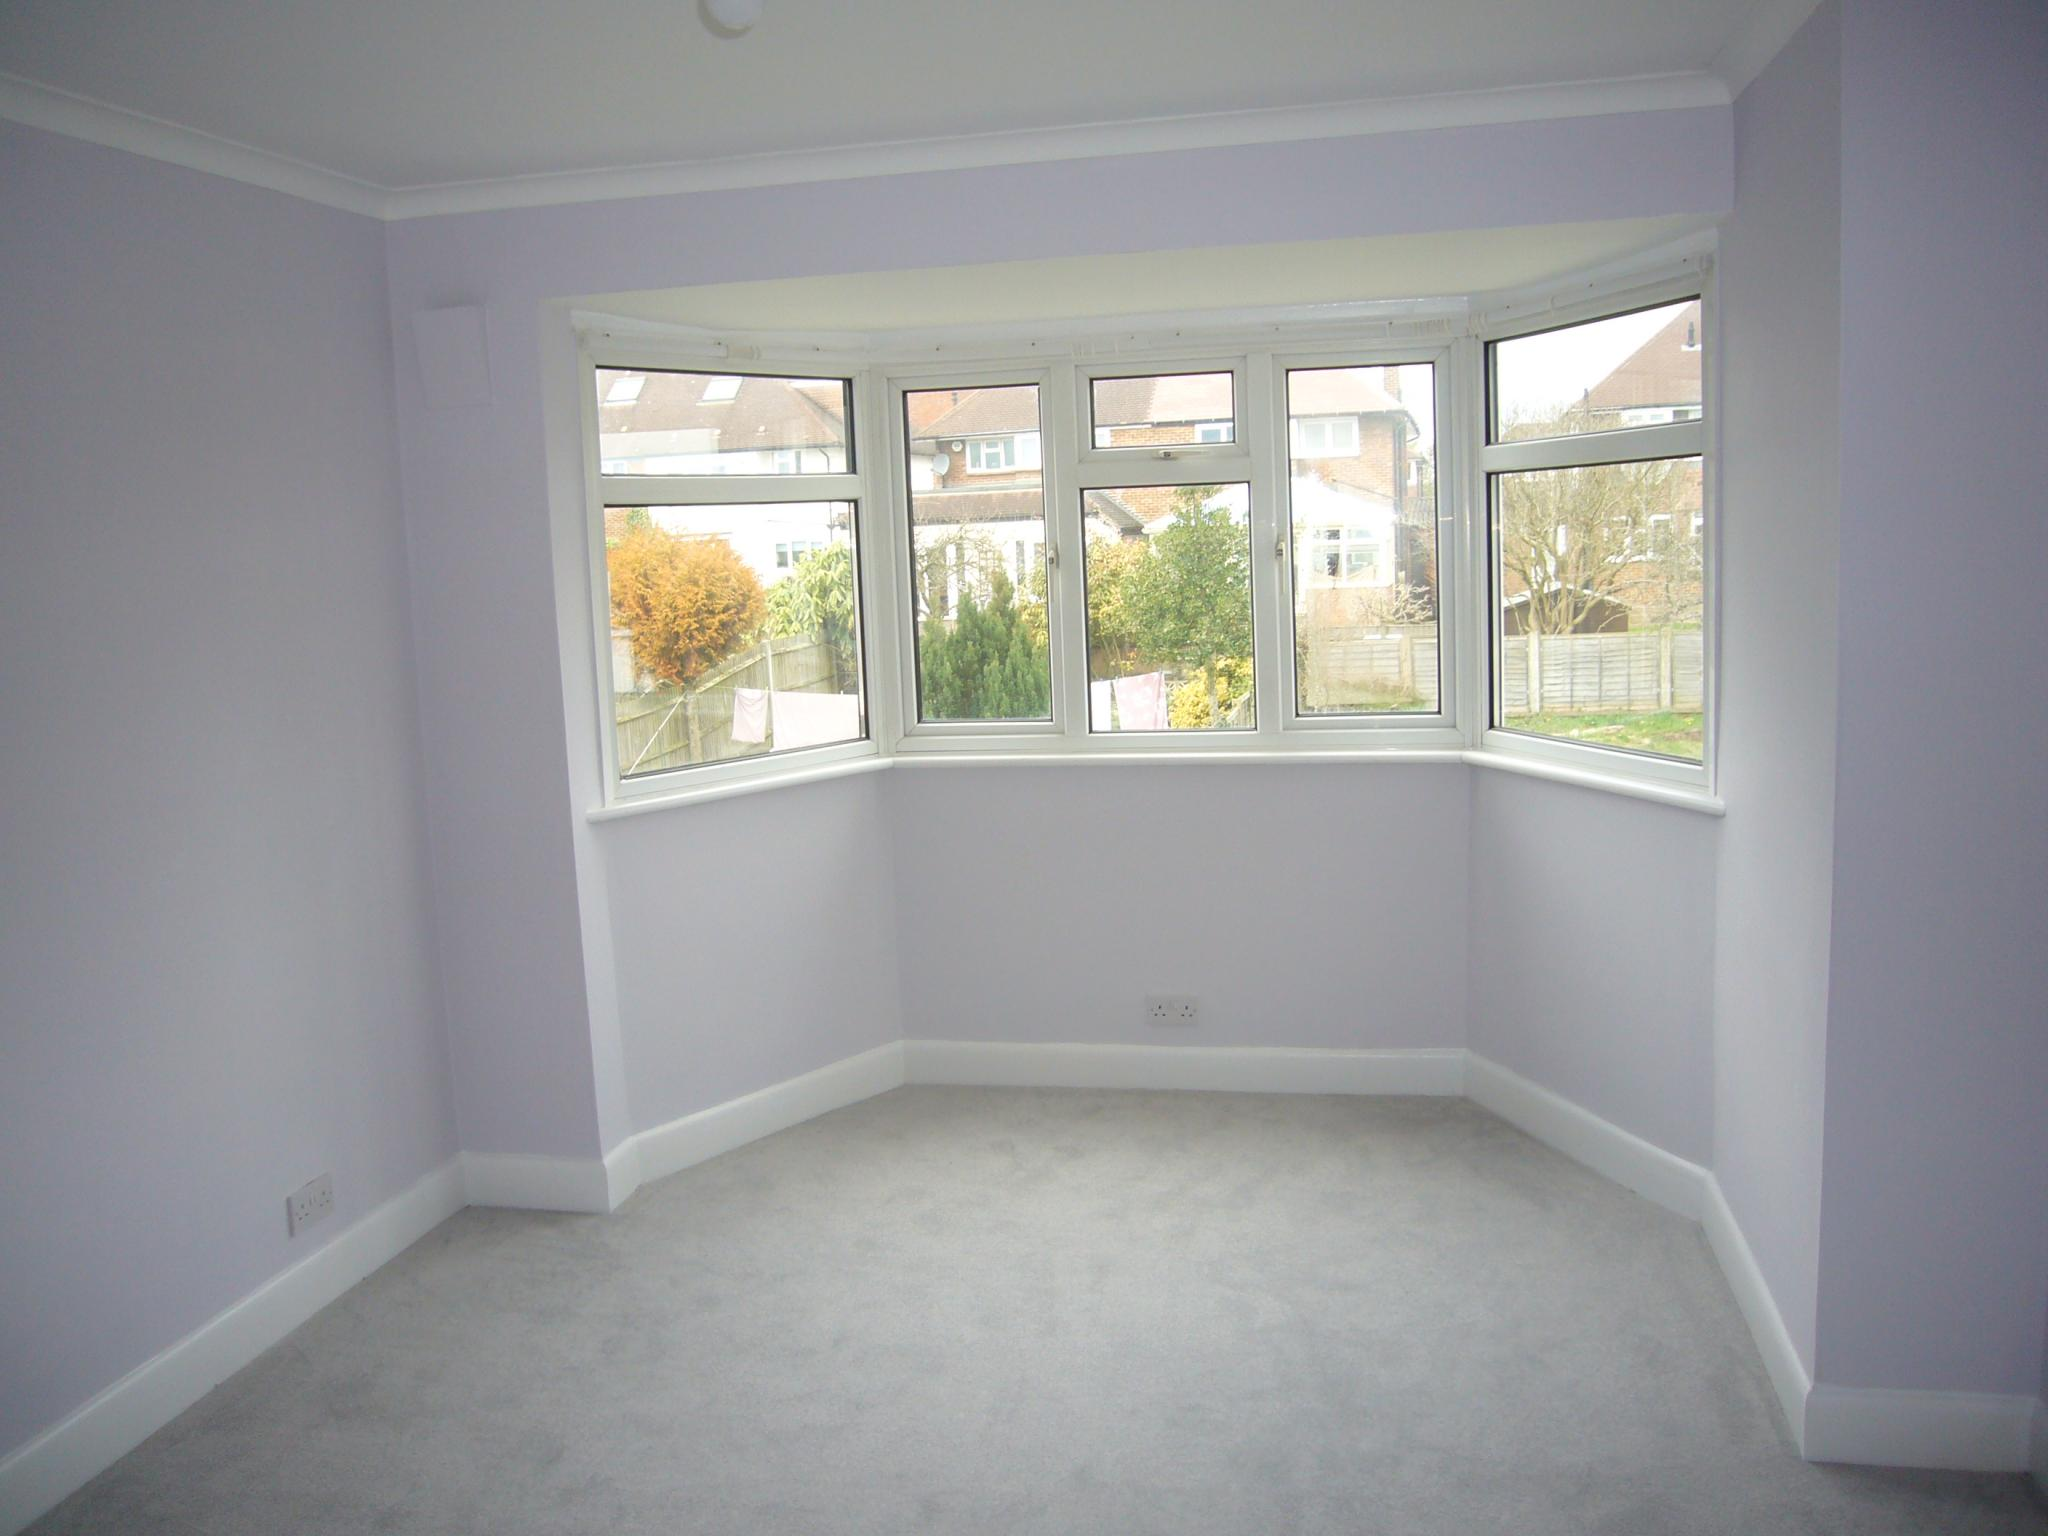 3 bedroom semi-detached house Let Agreed in Epsom - Photograph 9.